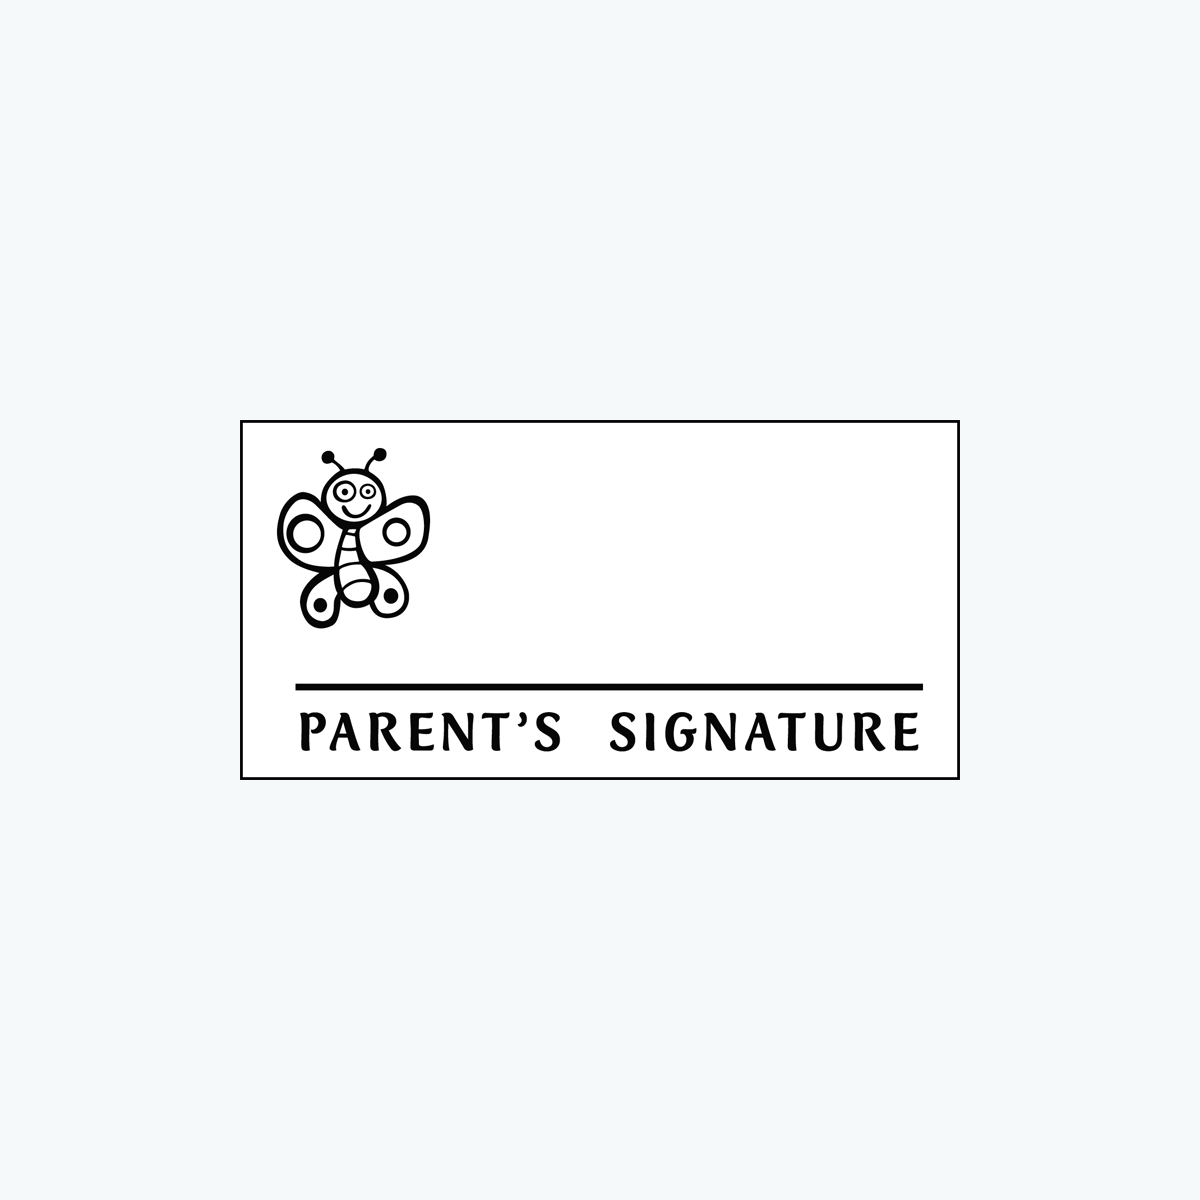 « Parent's Signature » Stamp